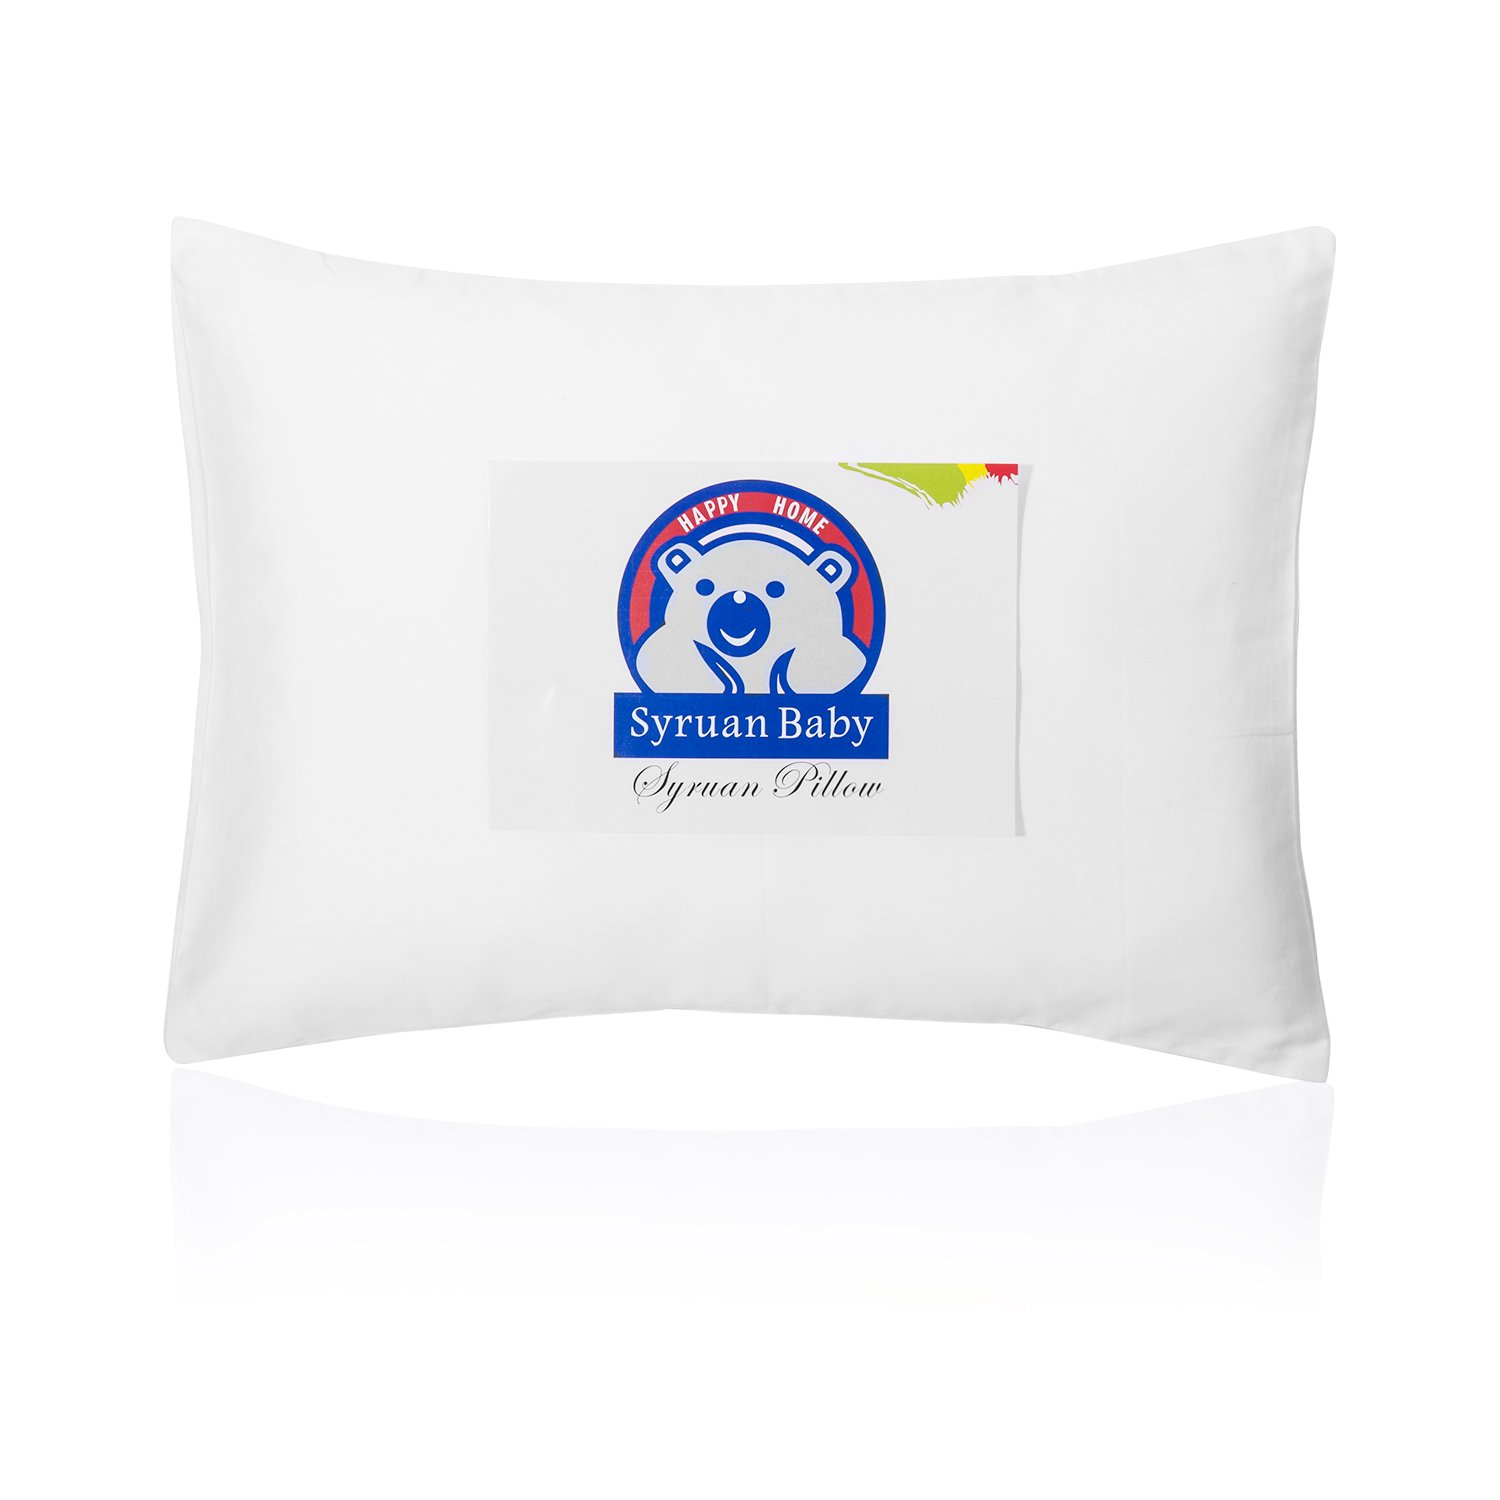 Syruan Toddler Pillow with Pillowcase - 13X18 White Organic Cotton Baby Pillows for Sleeping - Washable & Hypoallergenic- Kids,Toddlers-Perfect for Travel Pillows